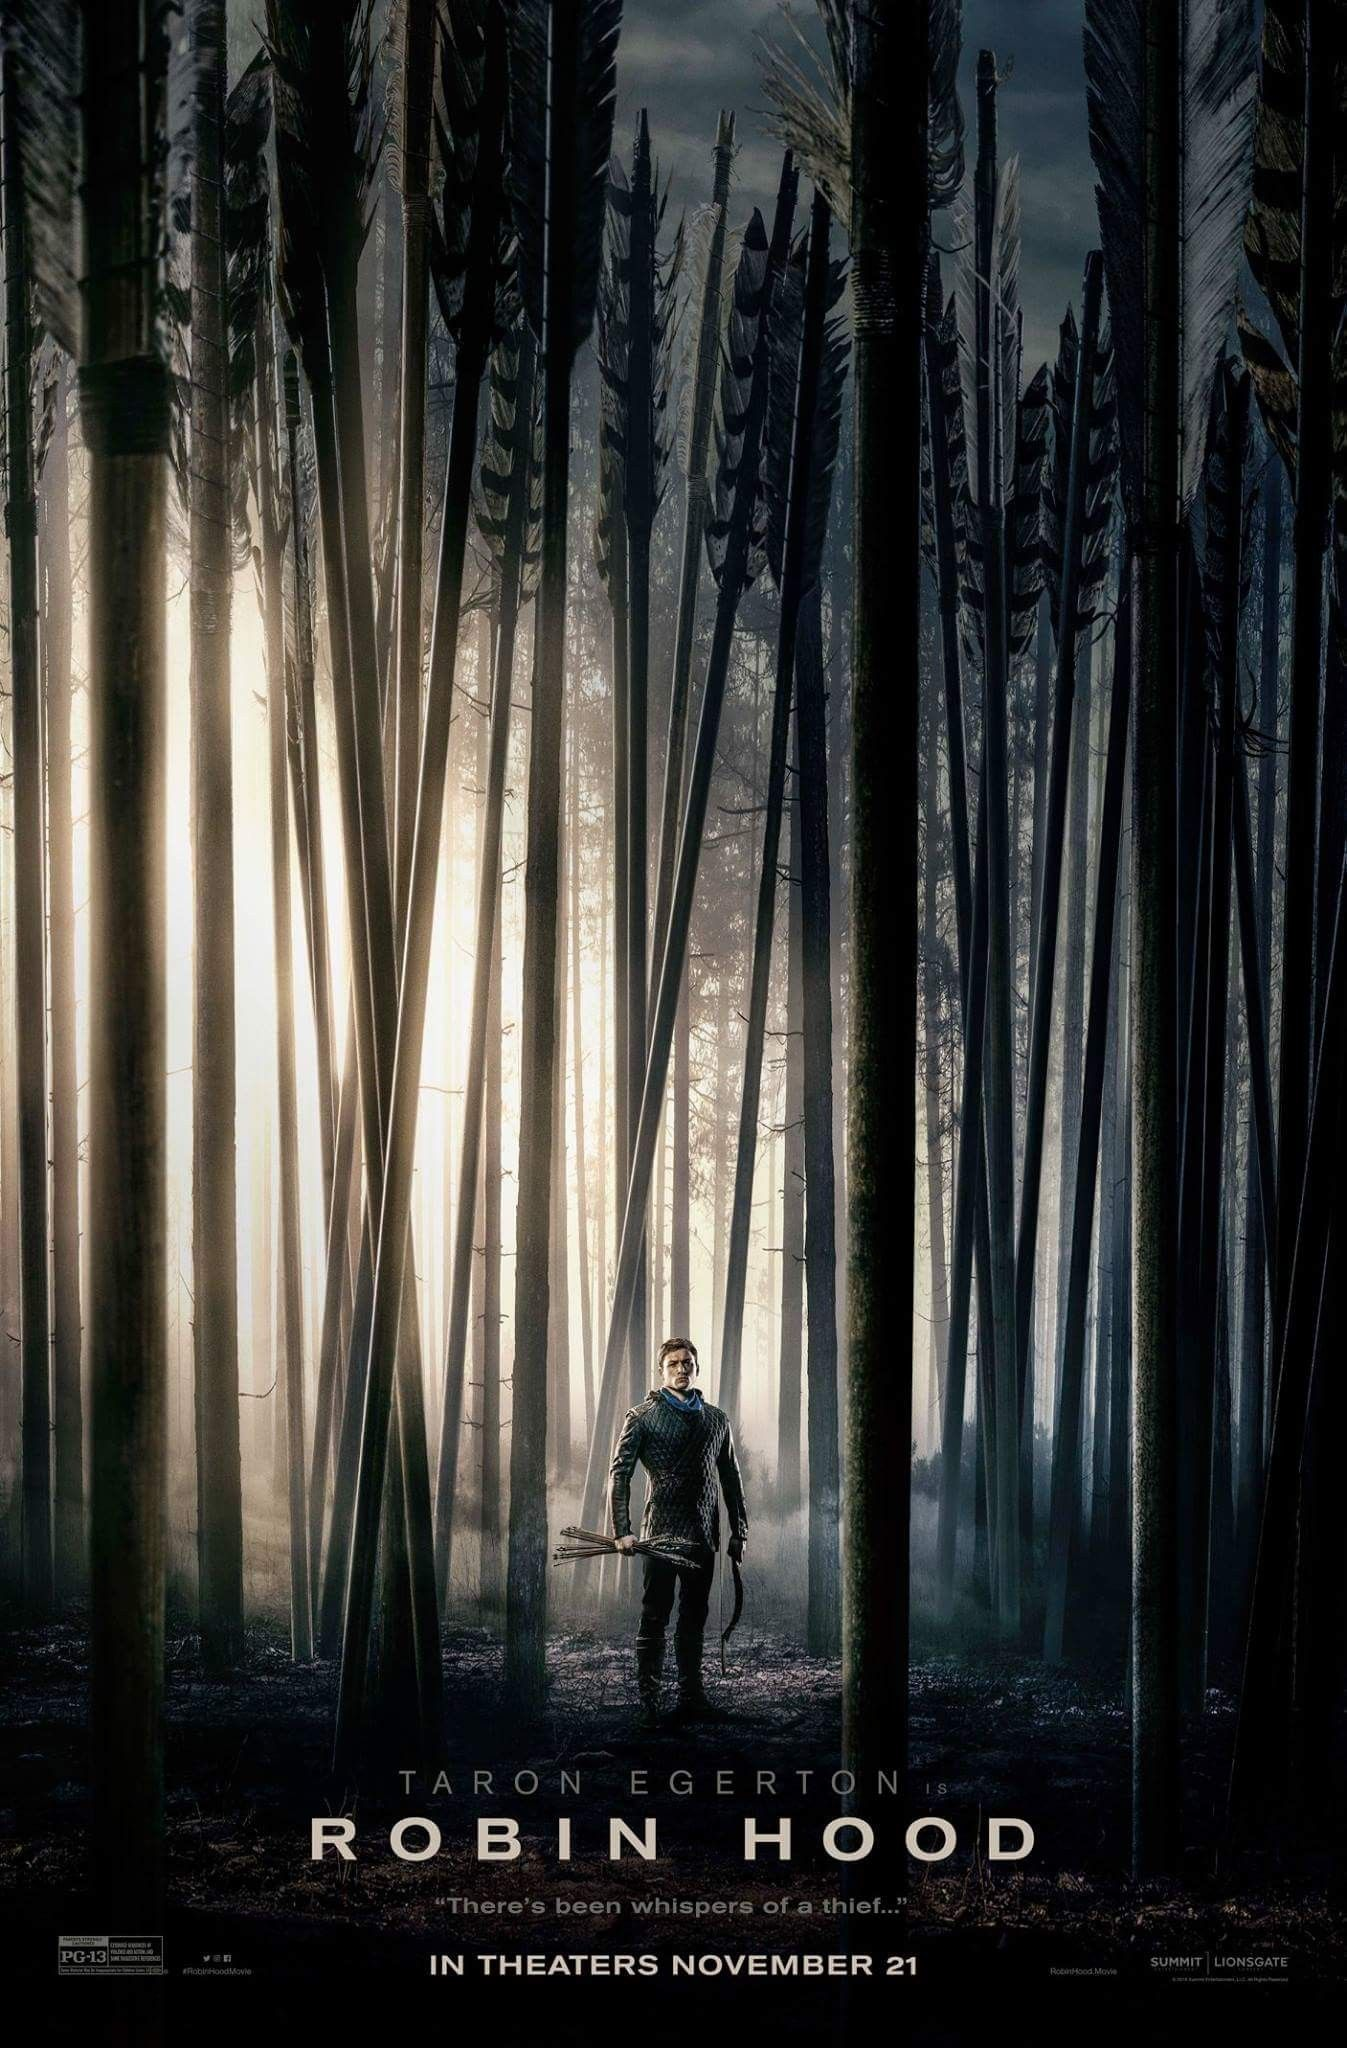 Pin By Ehecatl On Films Robin Hood Streaming Movies Hd Movies Online